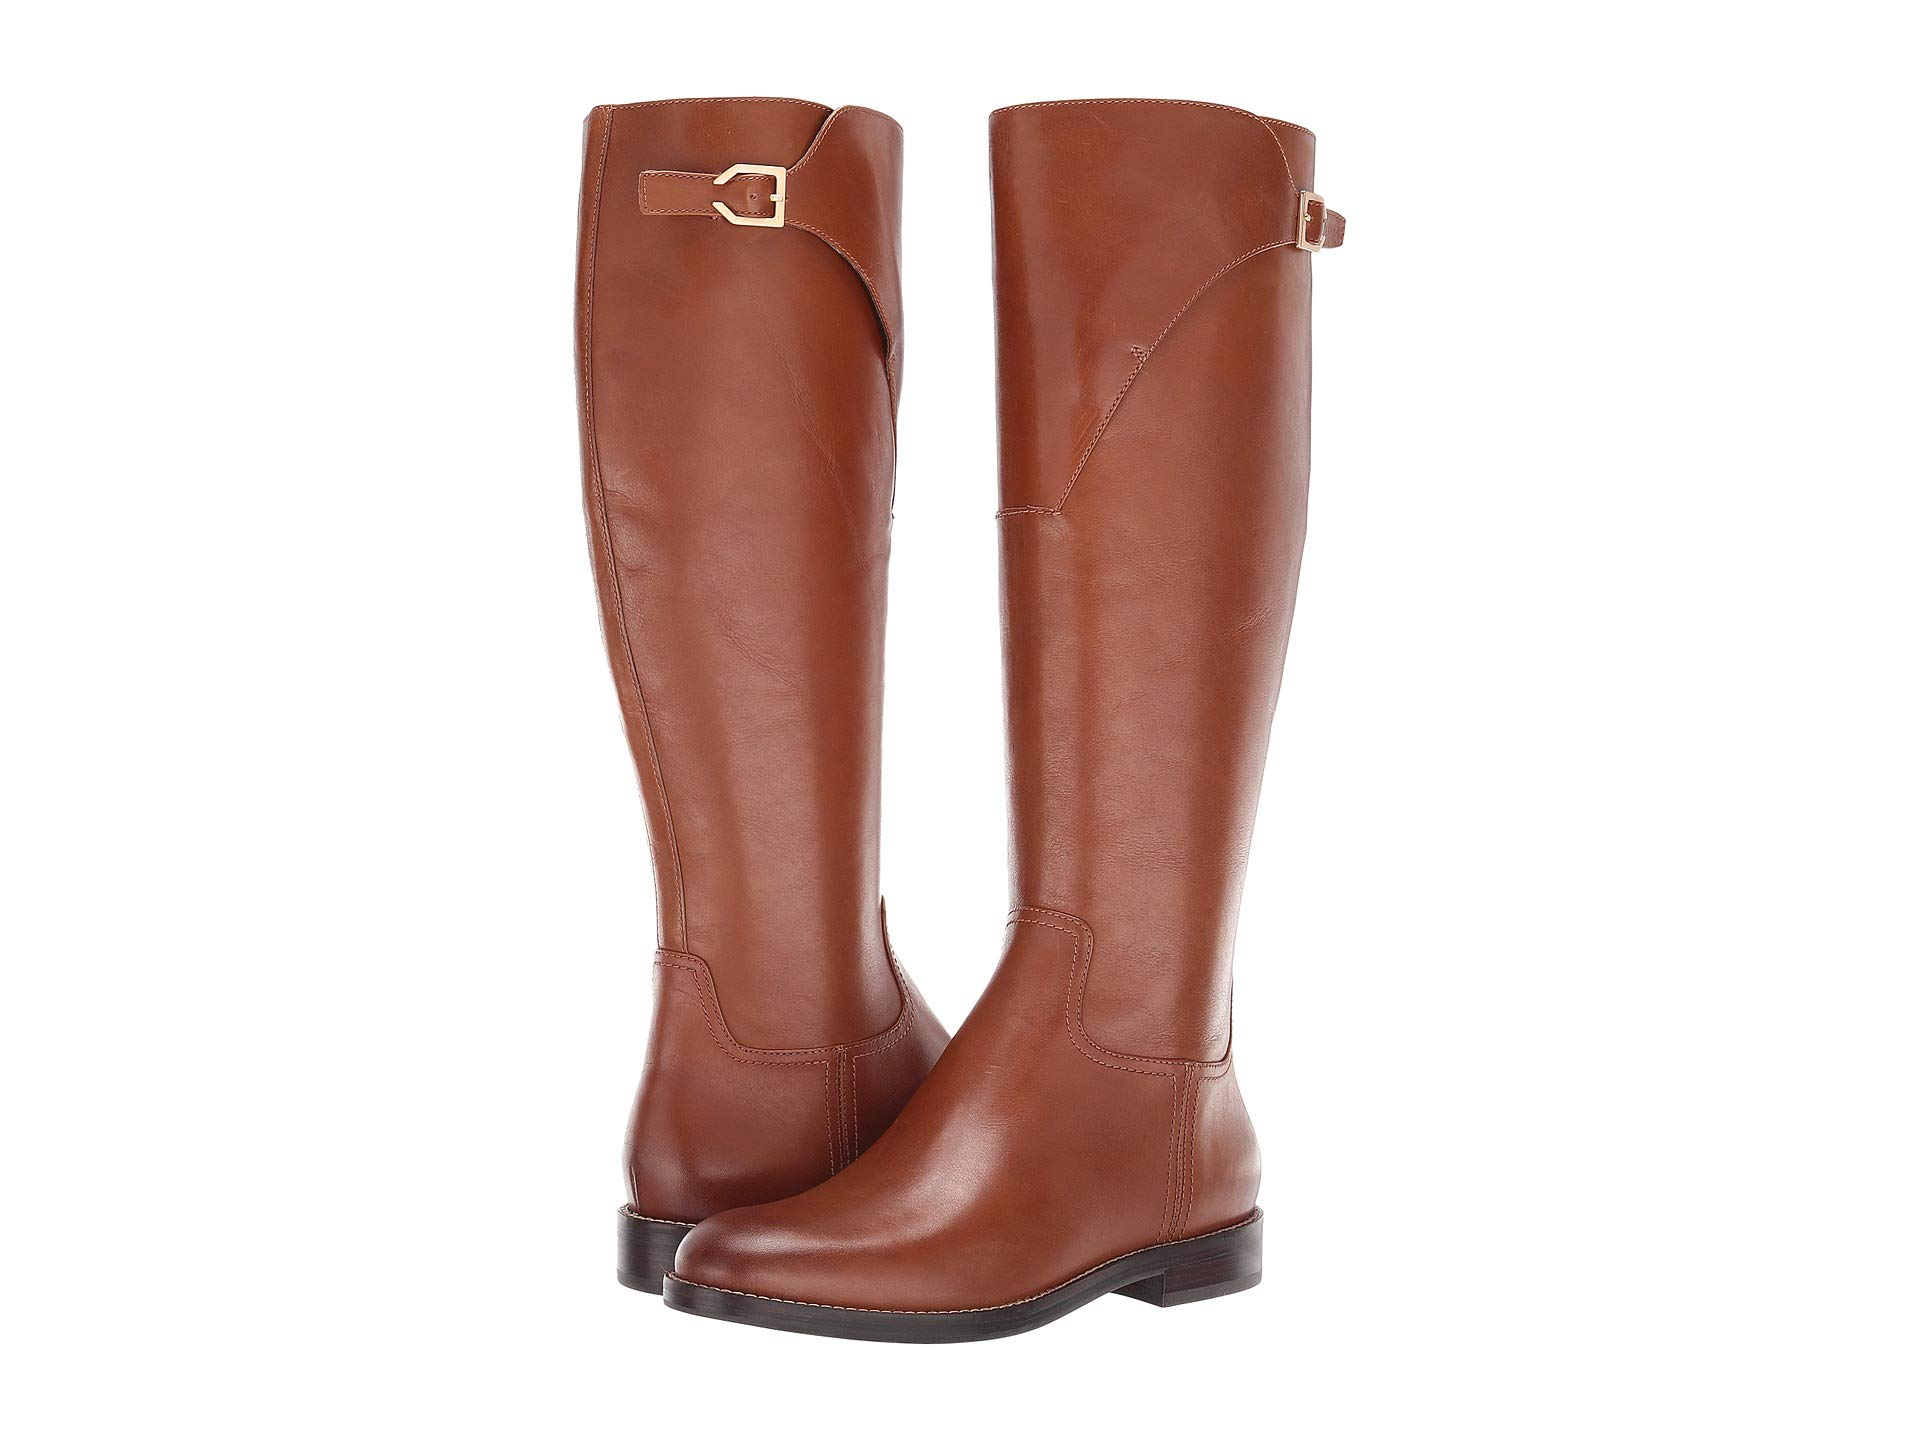 Winter Proof Cole Haan Tall Riding Boots Are On Sale At Zappos